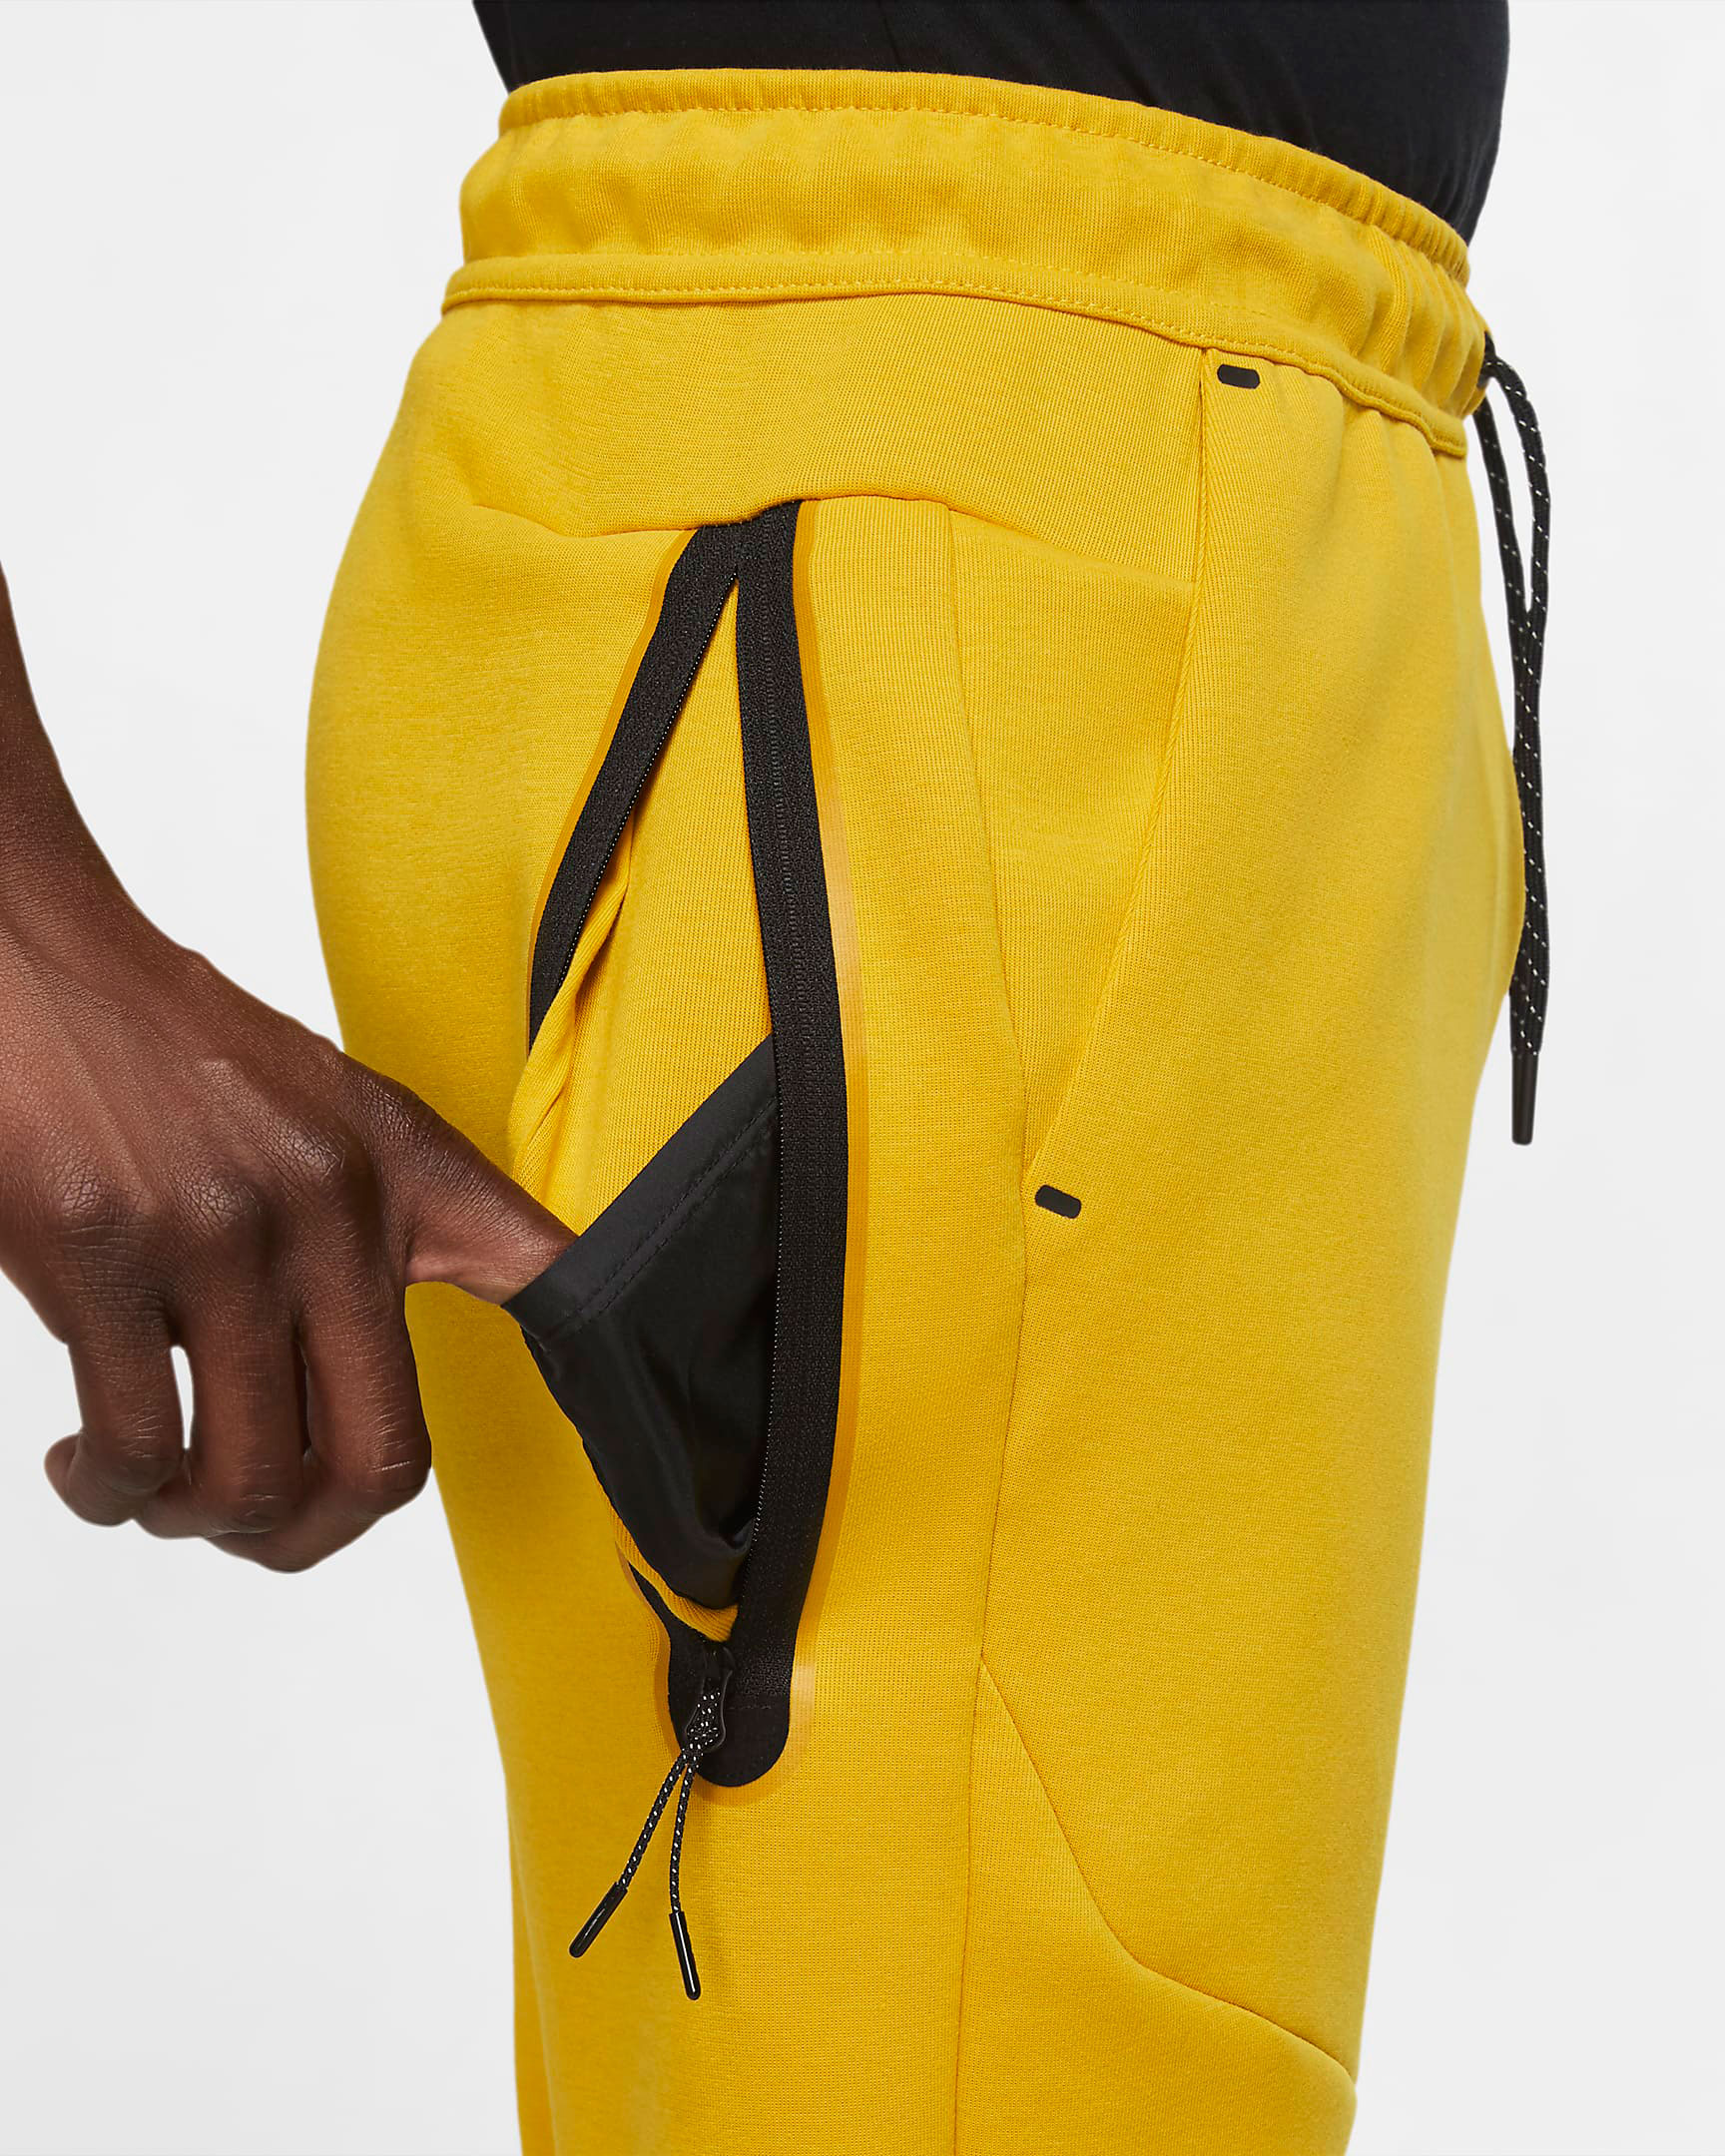 nike-dunk-high-varsity-maize-yellow-black-jogger-pants-3